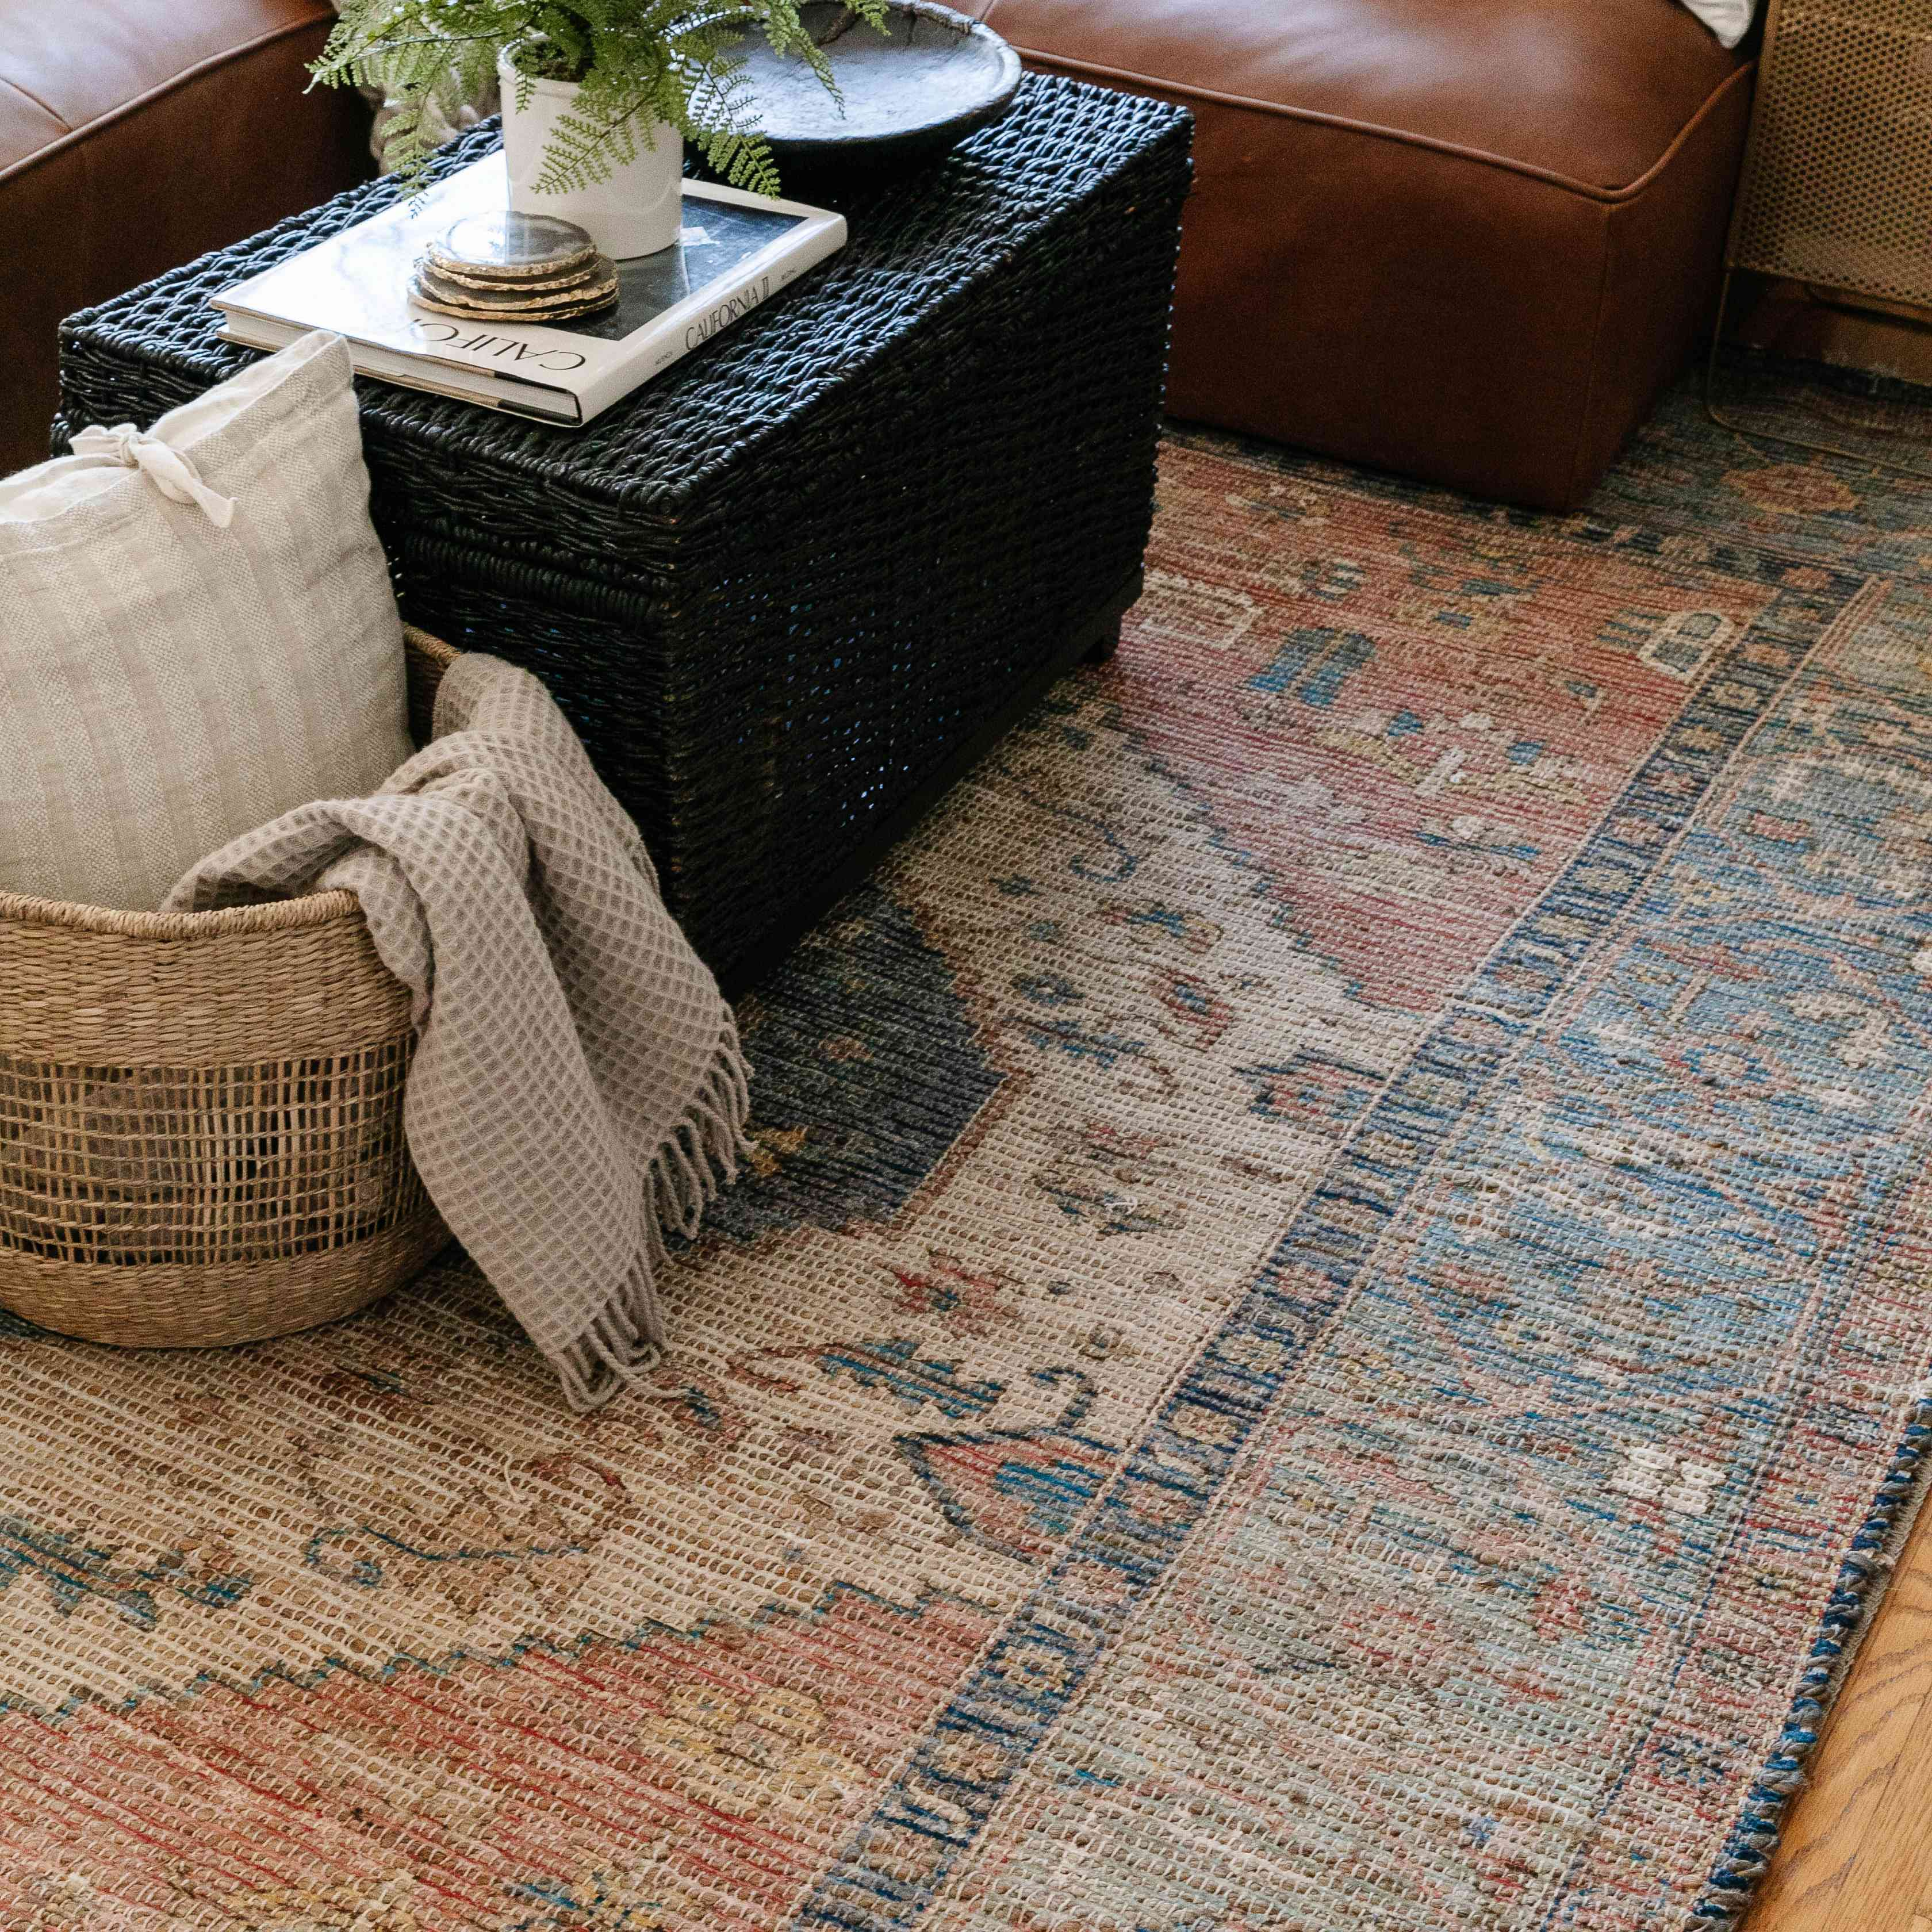 a rug in the home of drew scott, the lone fox